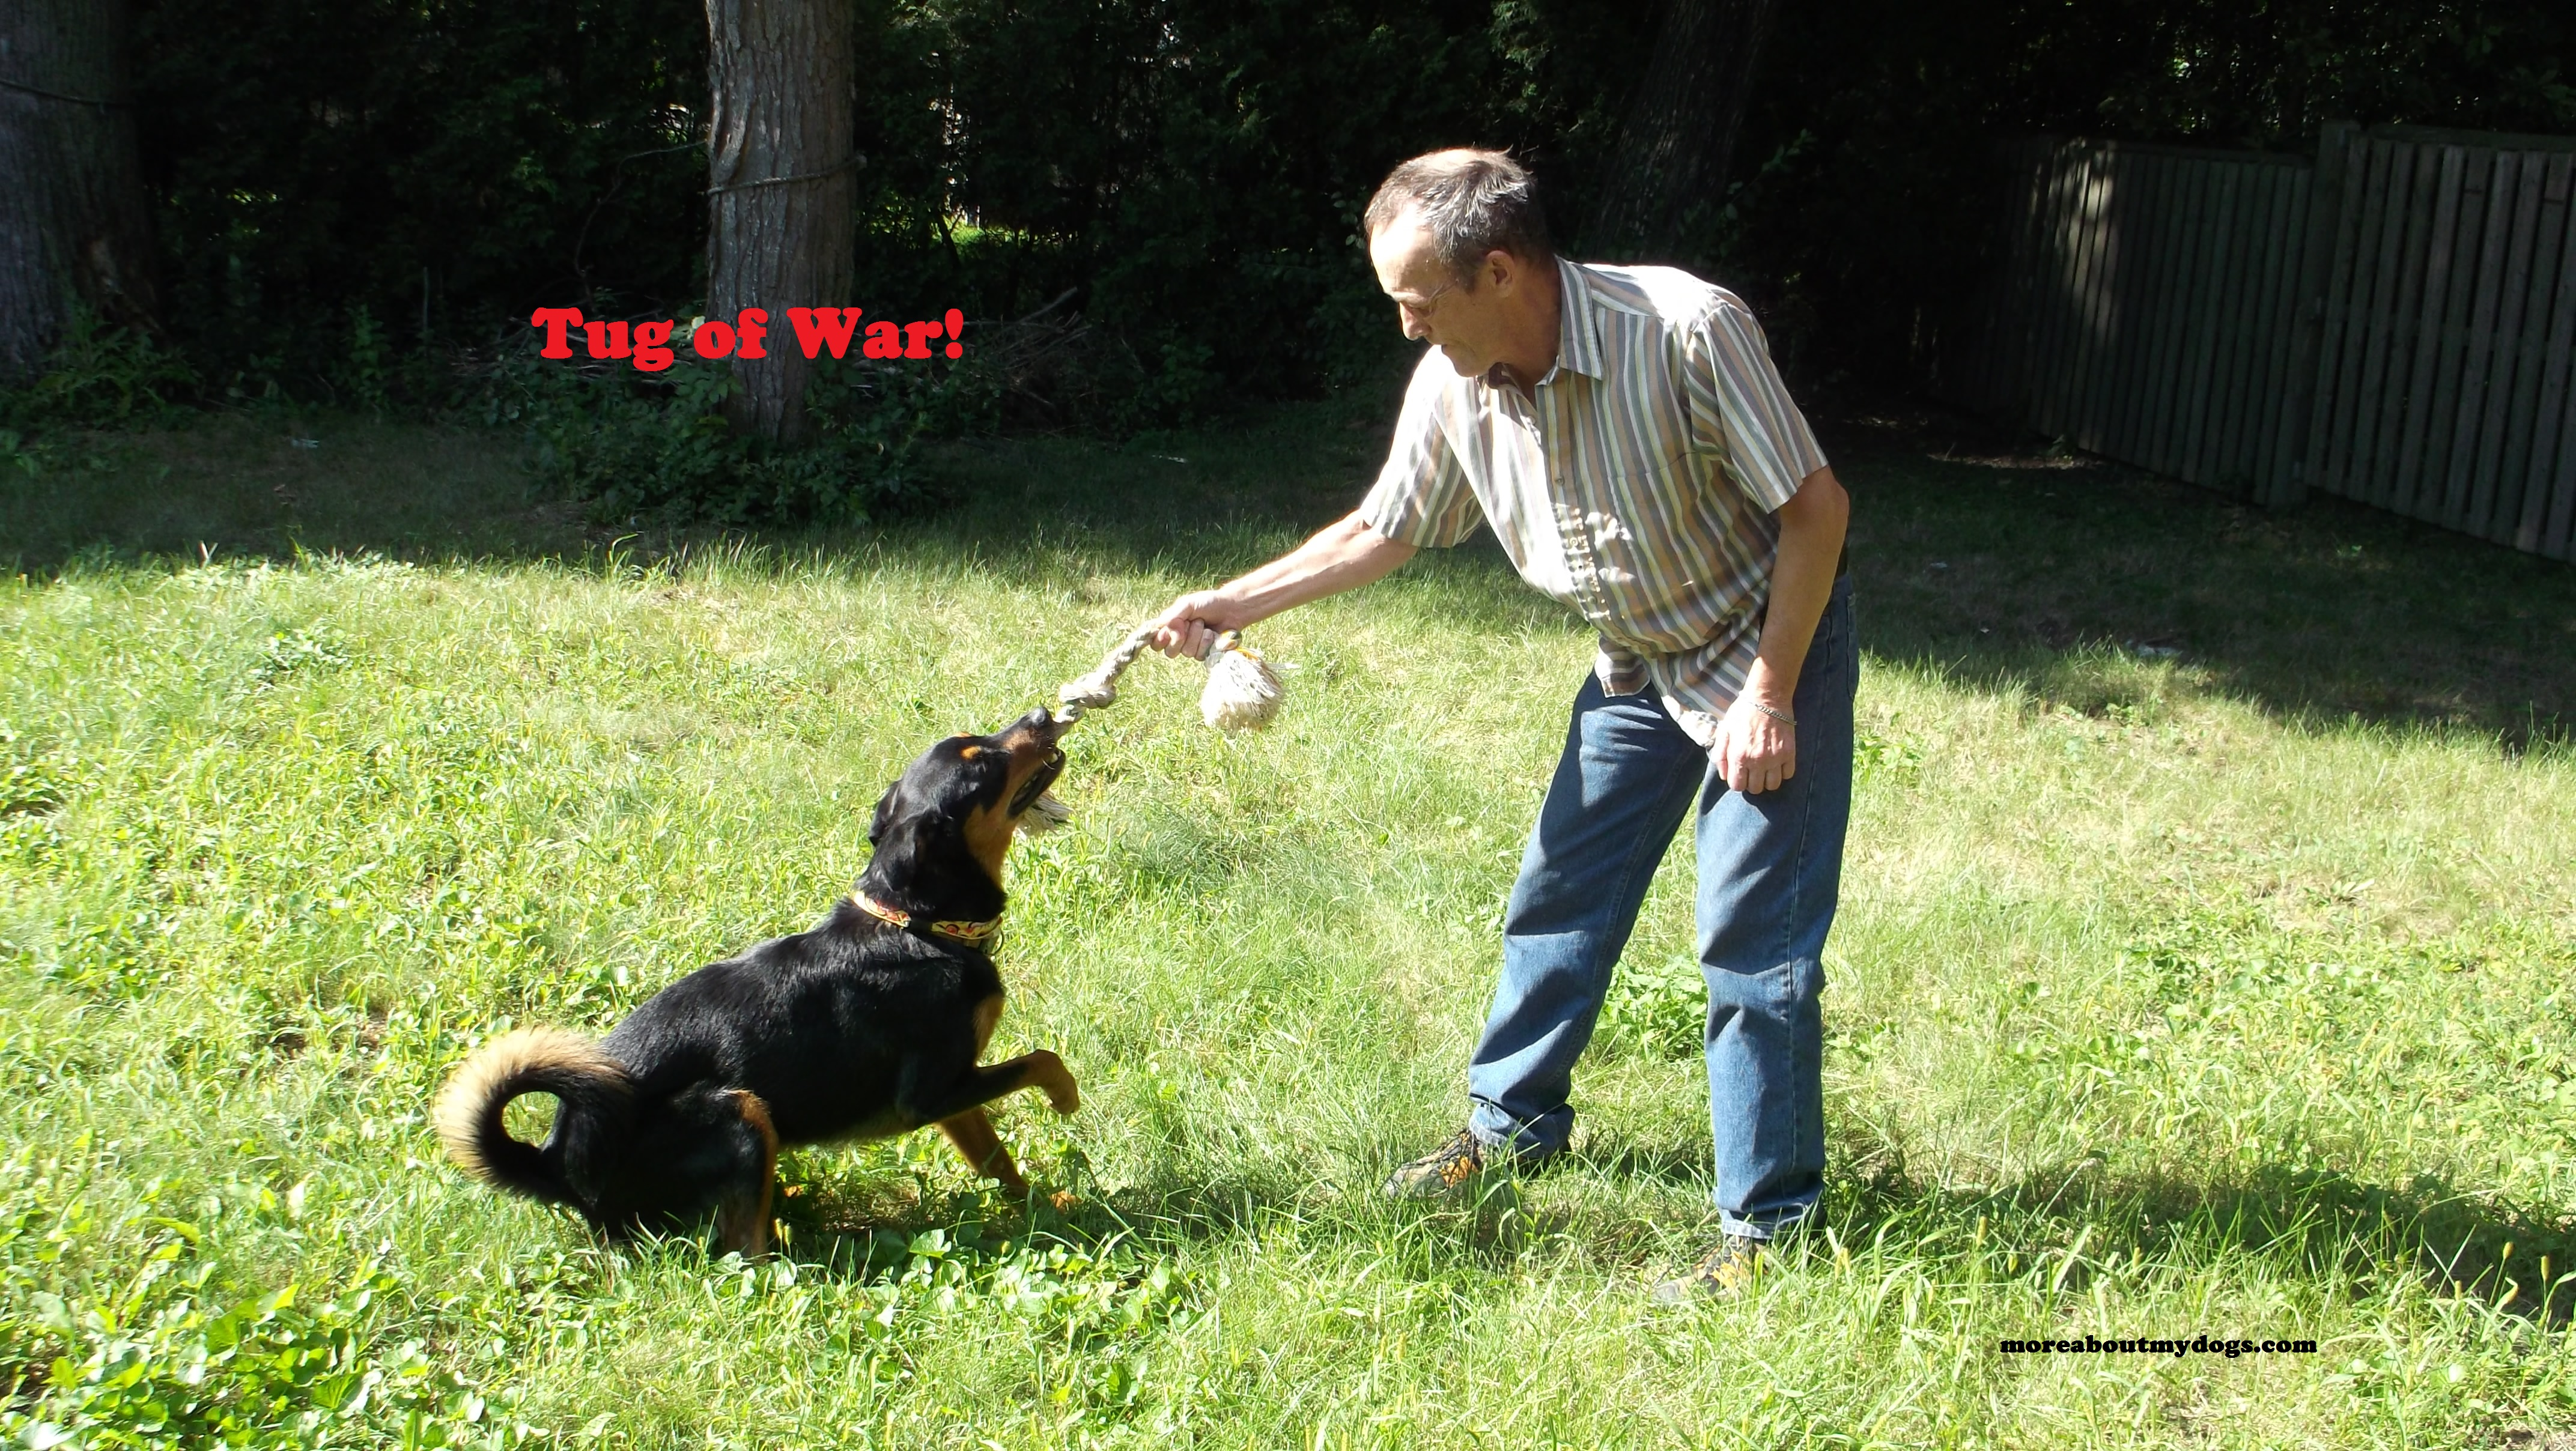 tug of war moreaboutmydogs com